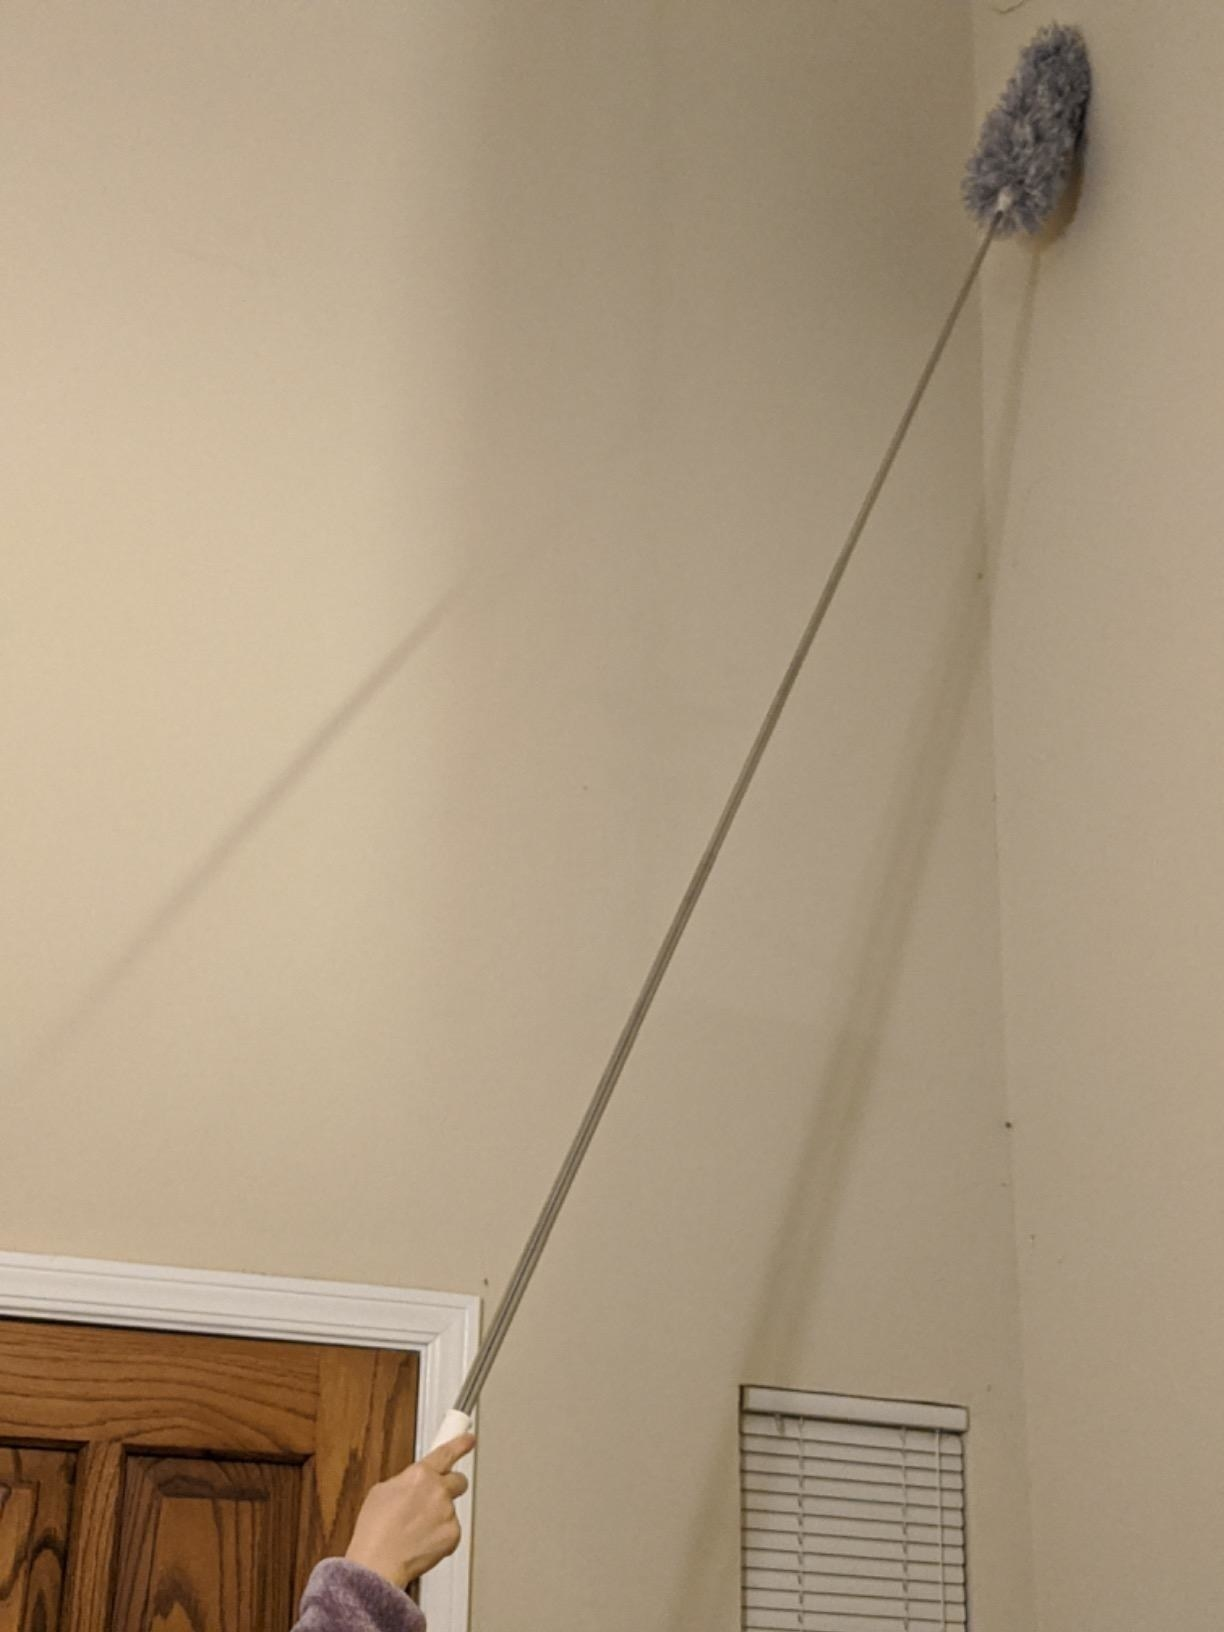 reviewer image of a customer dusting their ceiling with the microfiber duster with extension pole